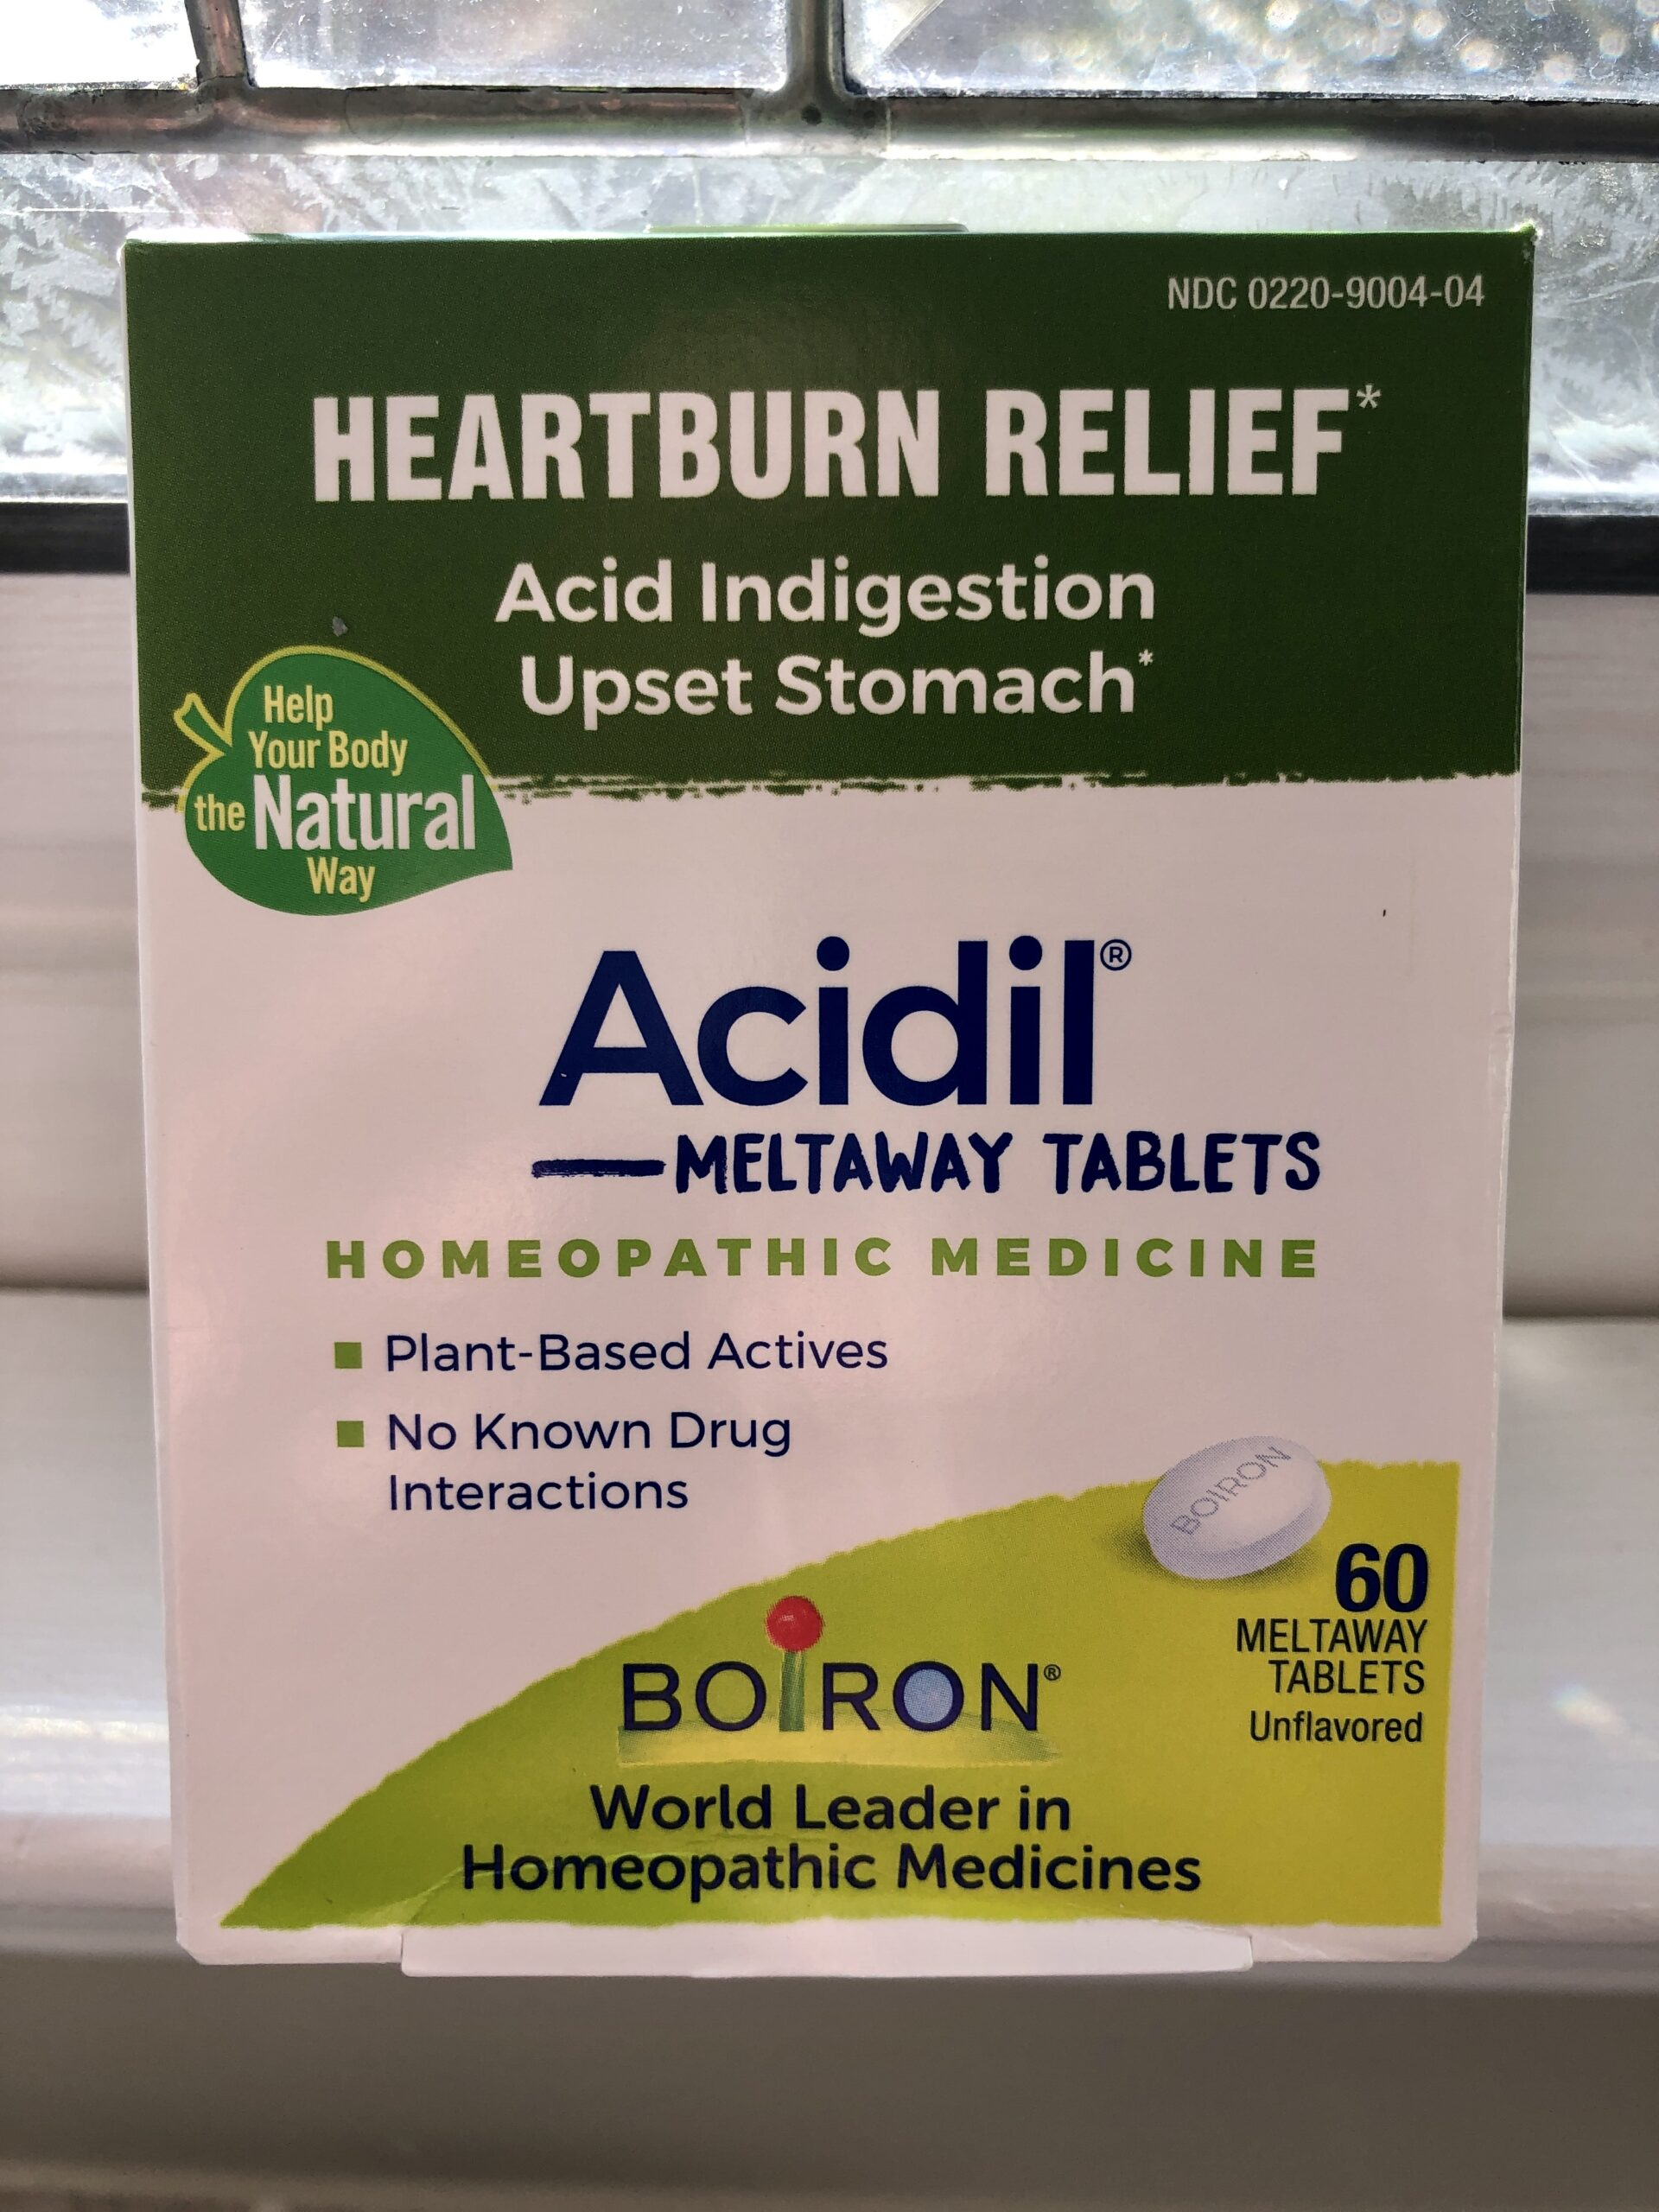 Acidil homeopathic heartburn relief